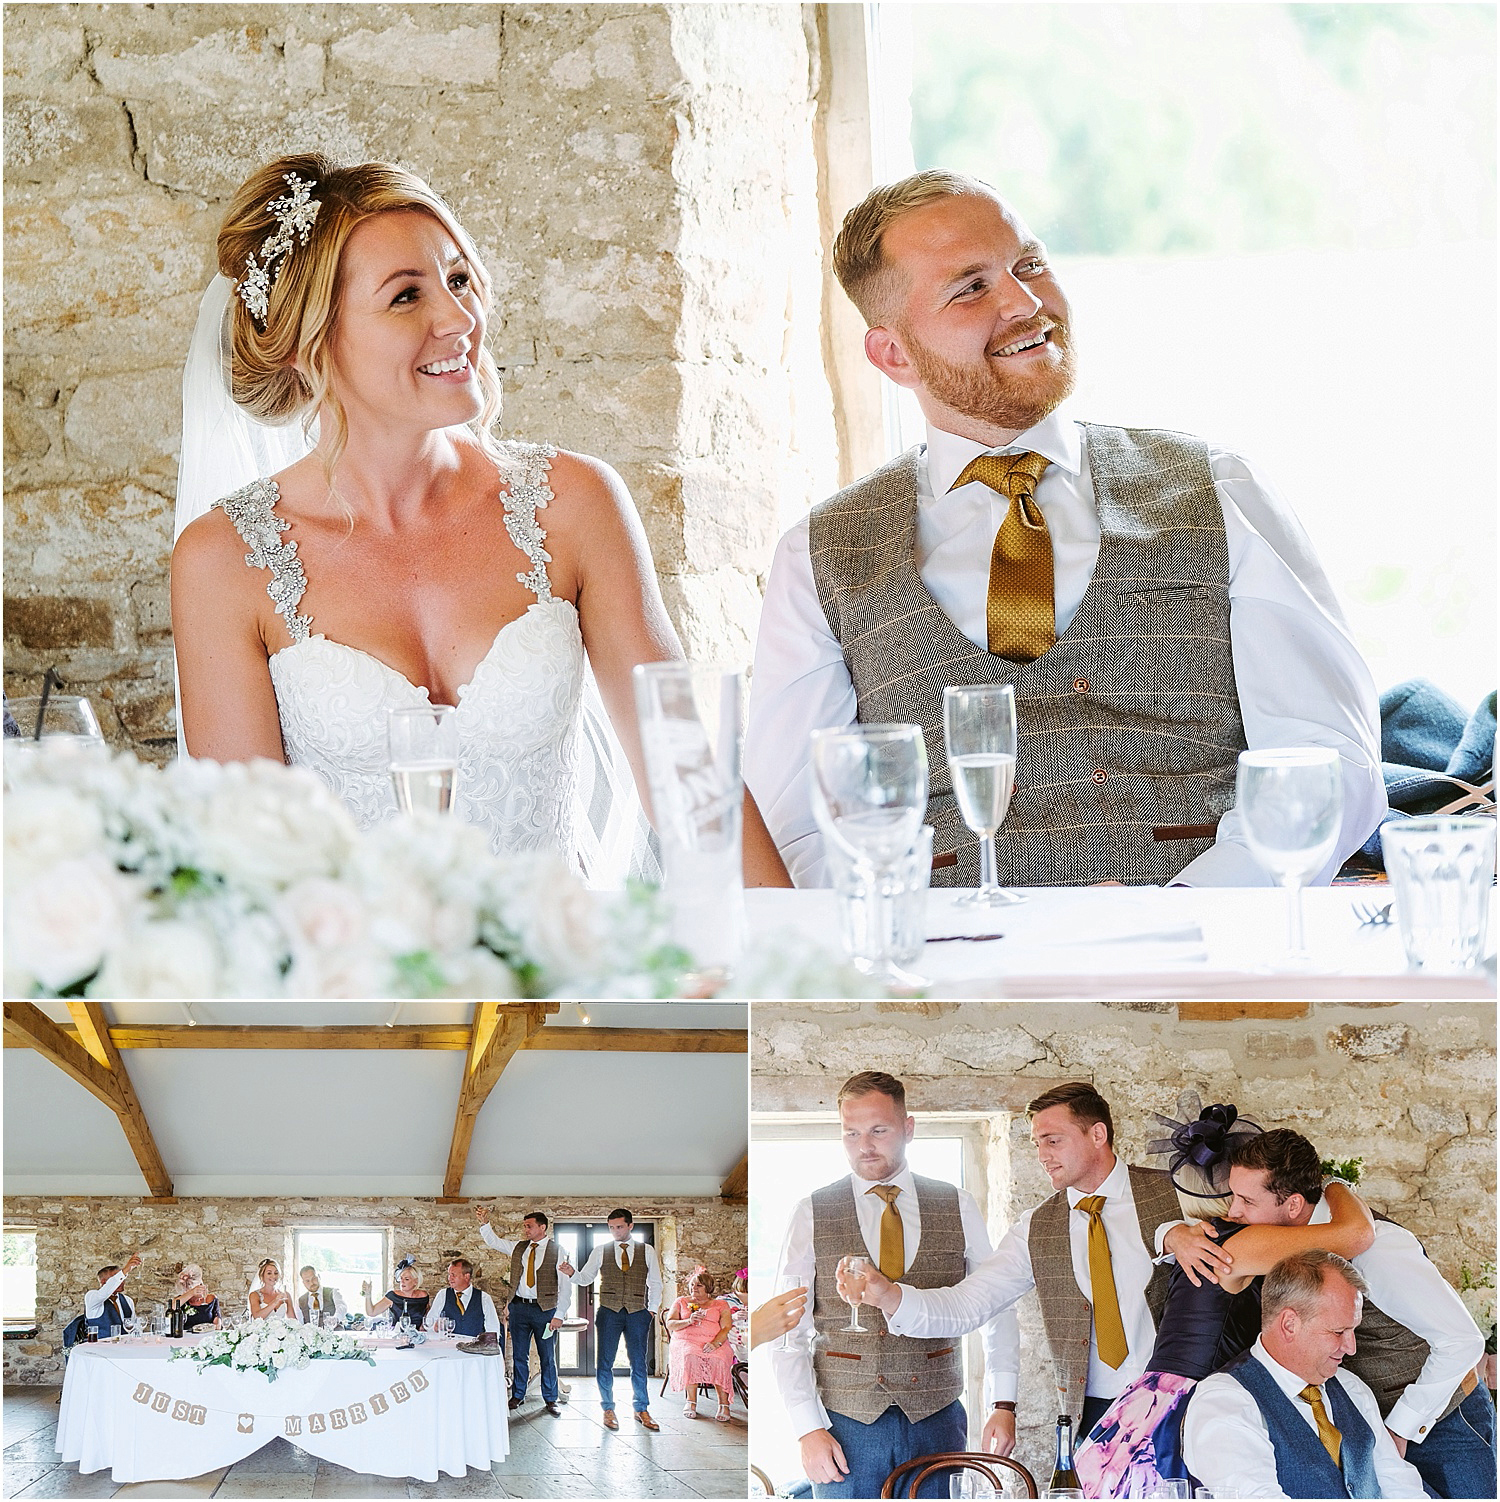 Wedding at Healey Barn - wedding photography by www.2tonephotography.co.uk 084.jpg